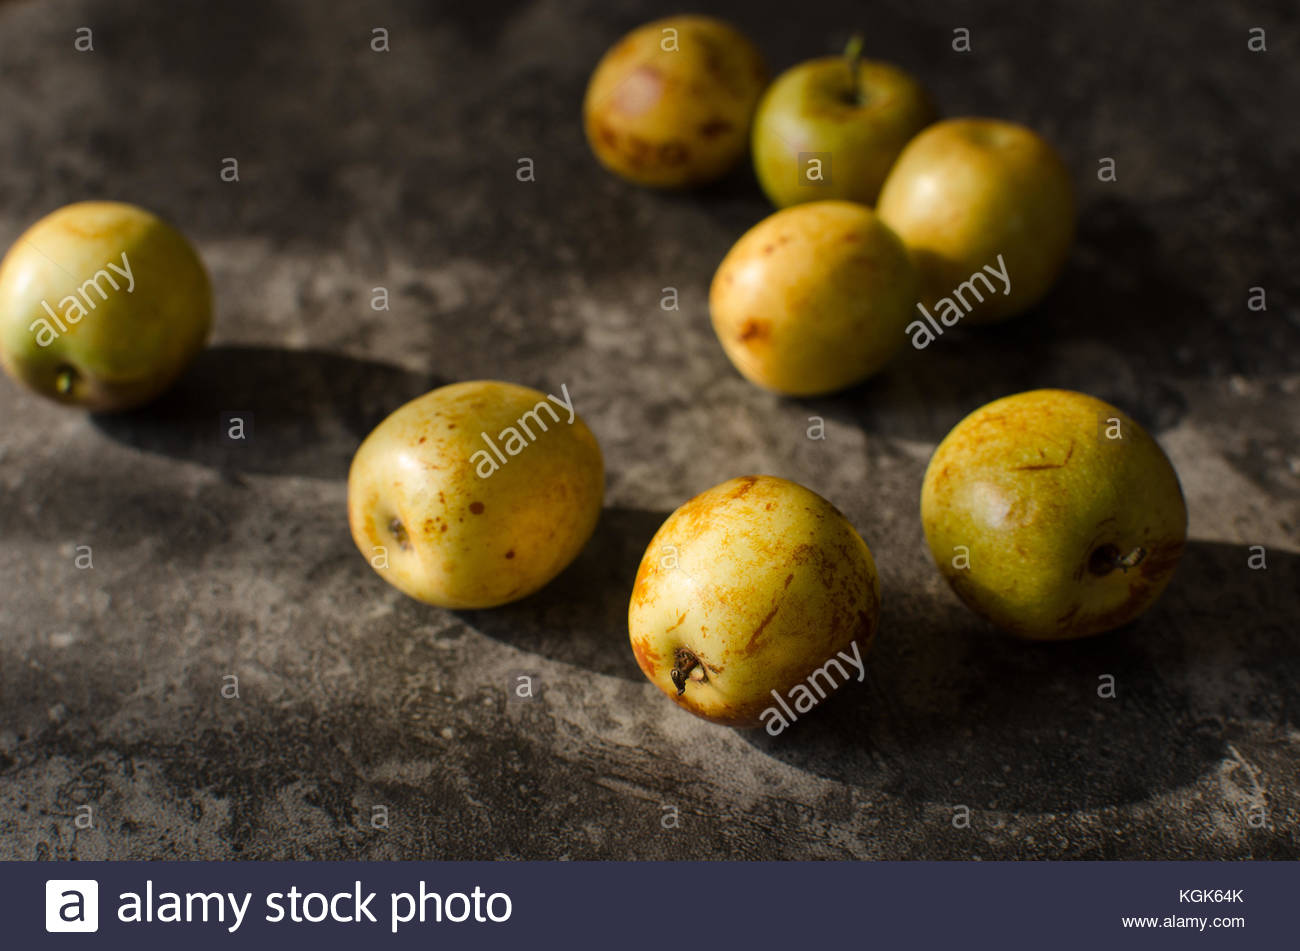 jujube fruit stock photos jujube fruit stock images alamy. Black Bedroom Furniture Sets. Home Design Ideas